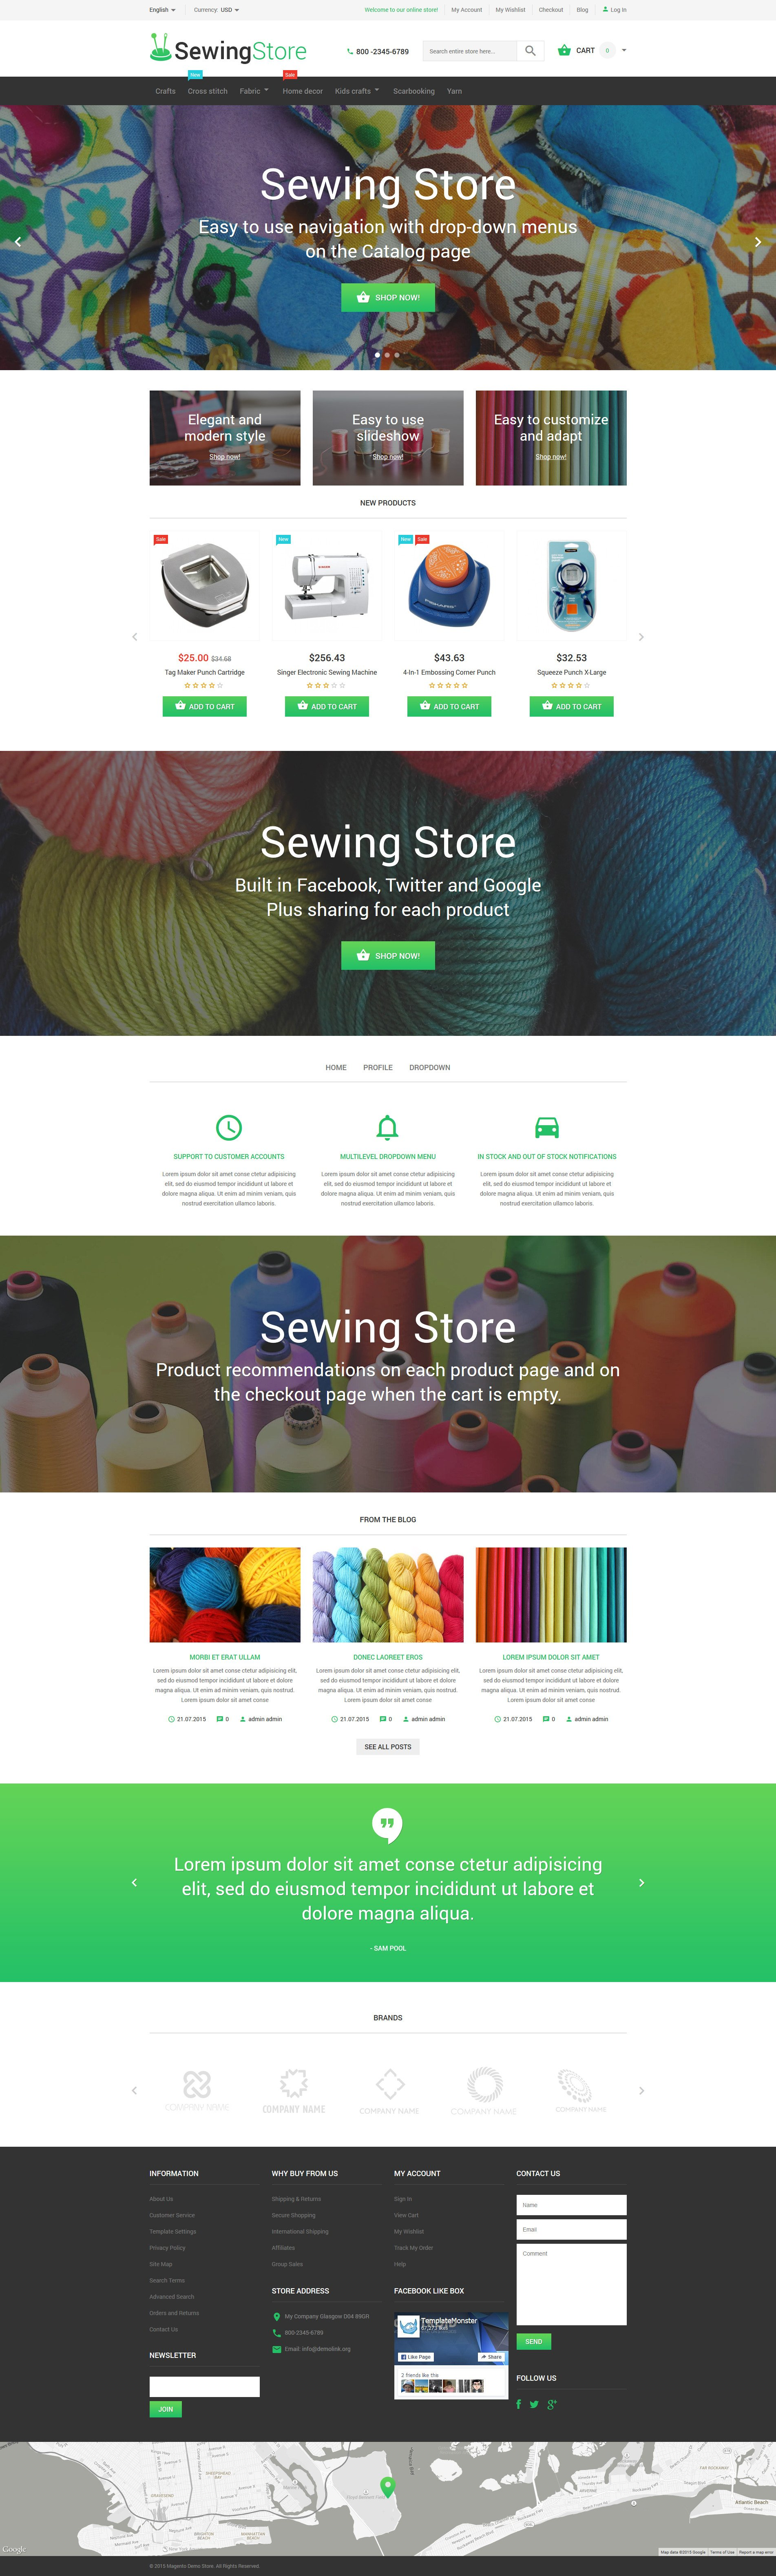 Sewing Store Magento Theme